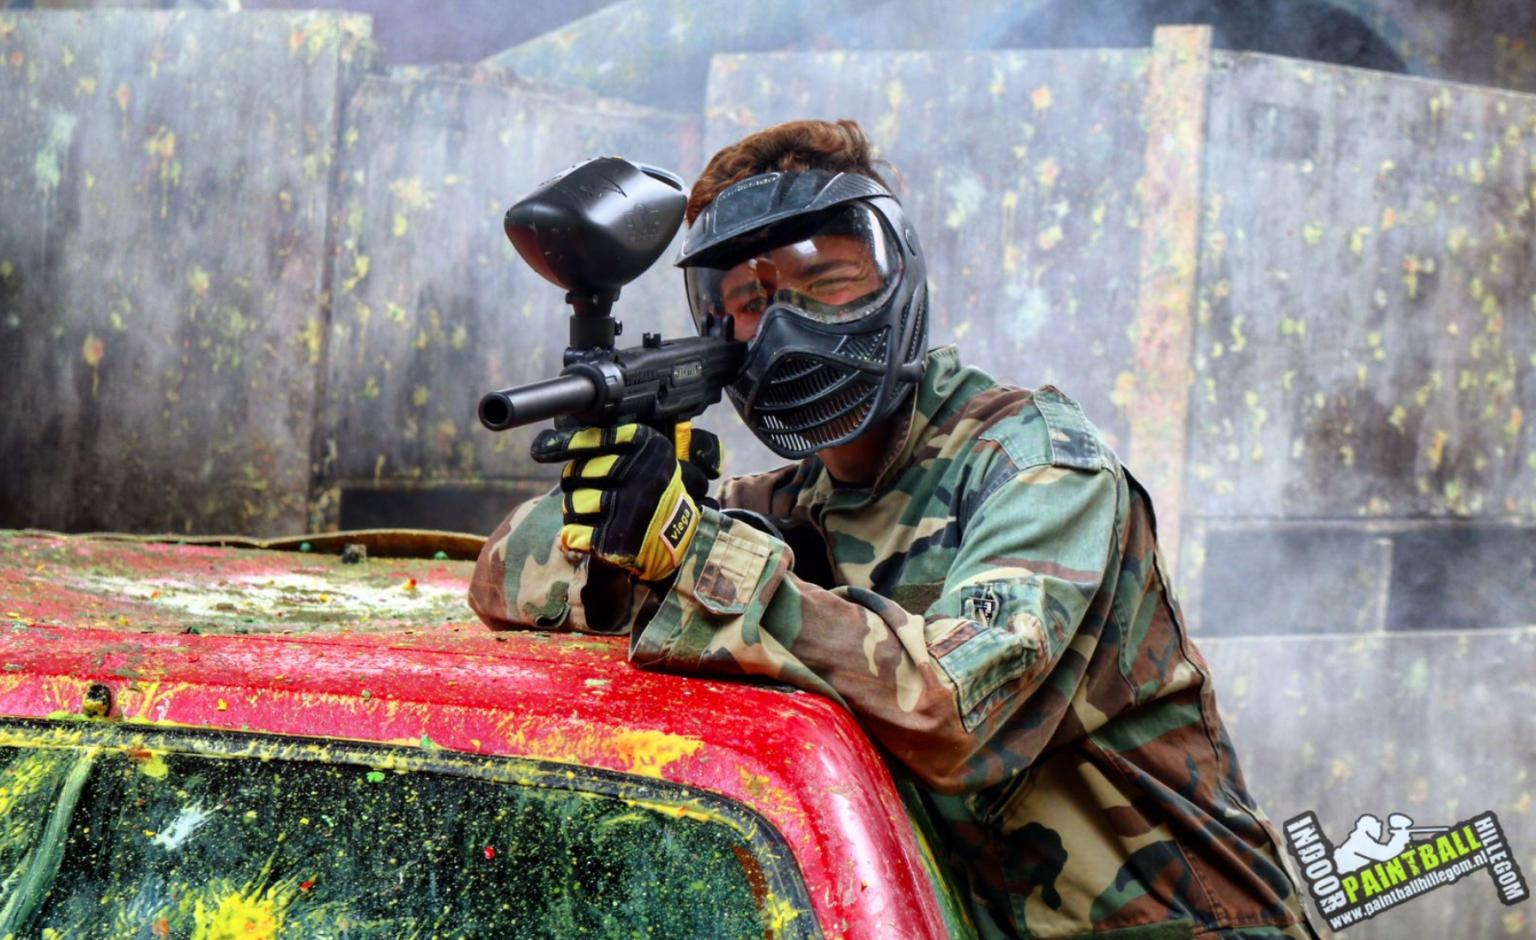 Paintball Hillegom goes online with Briq!